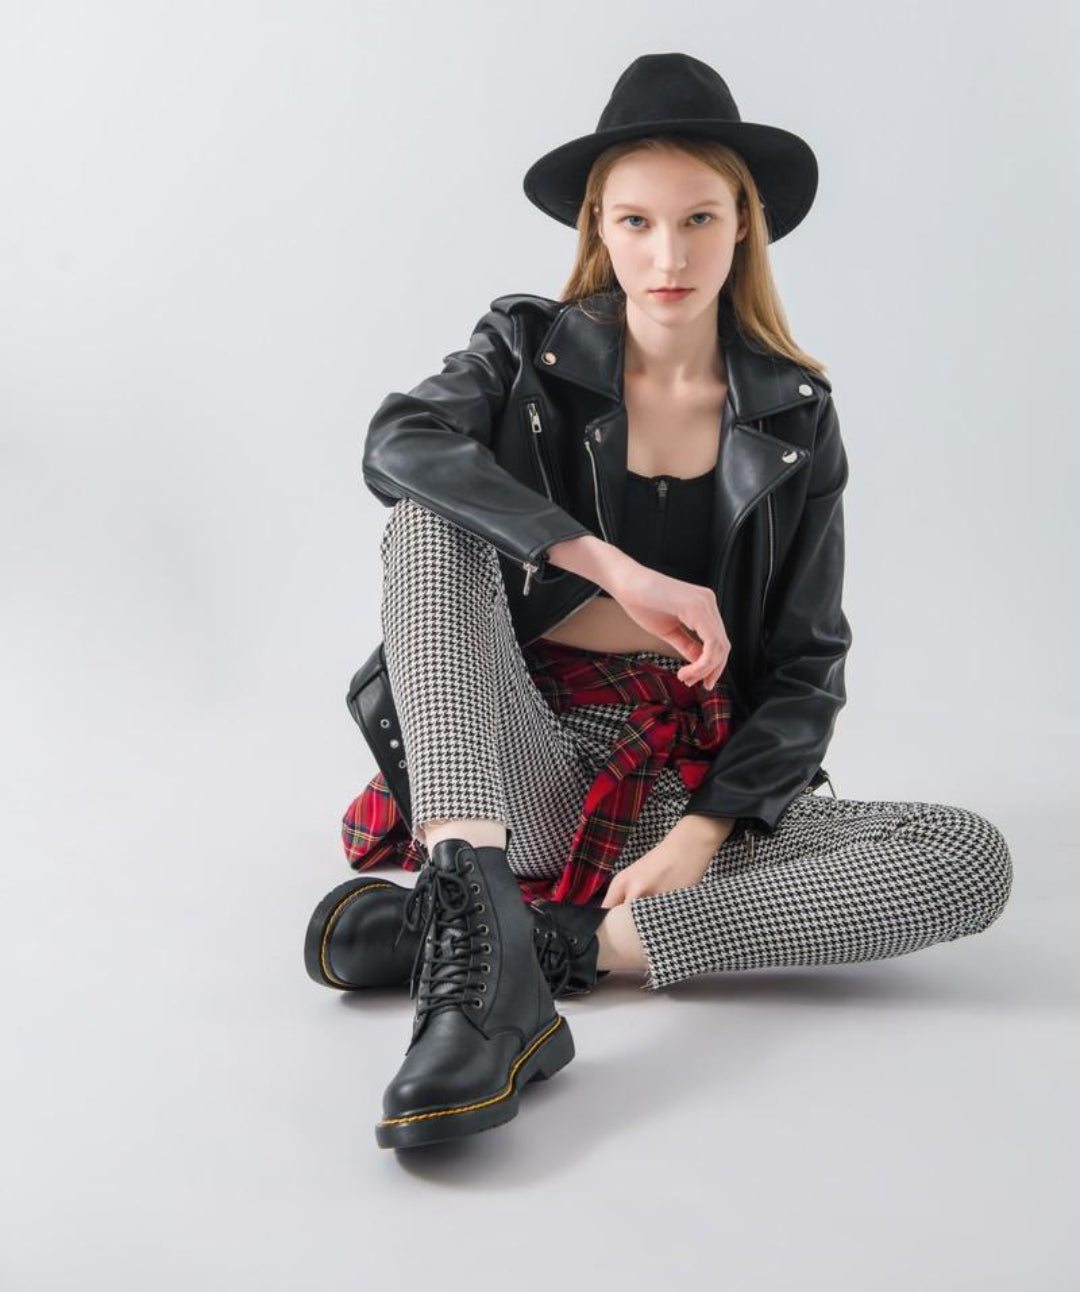 punk model wearing chunky boots